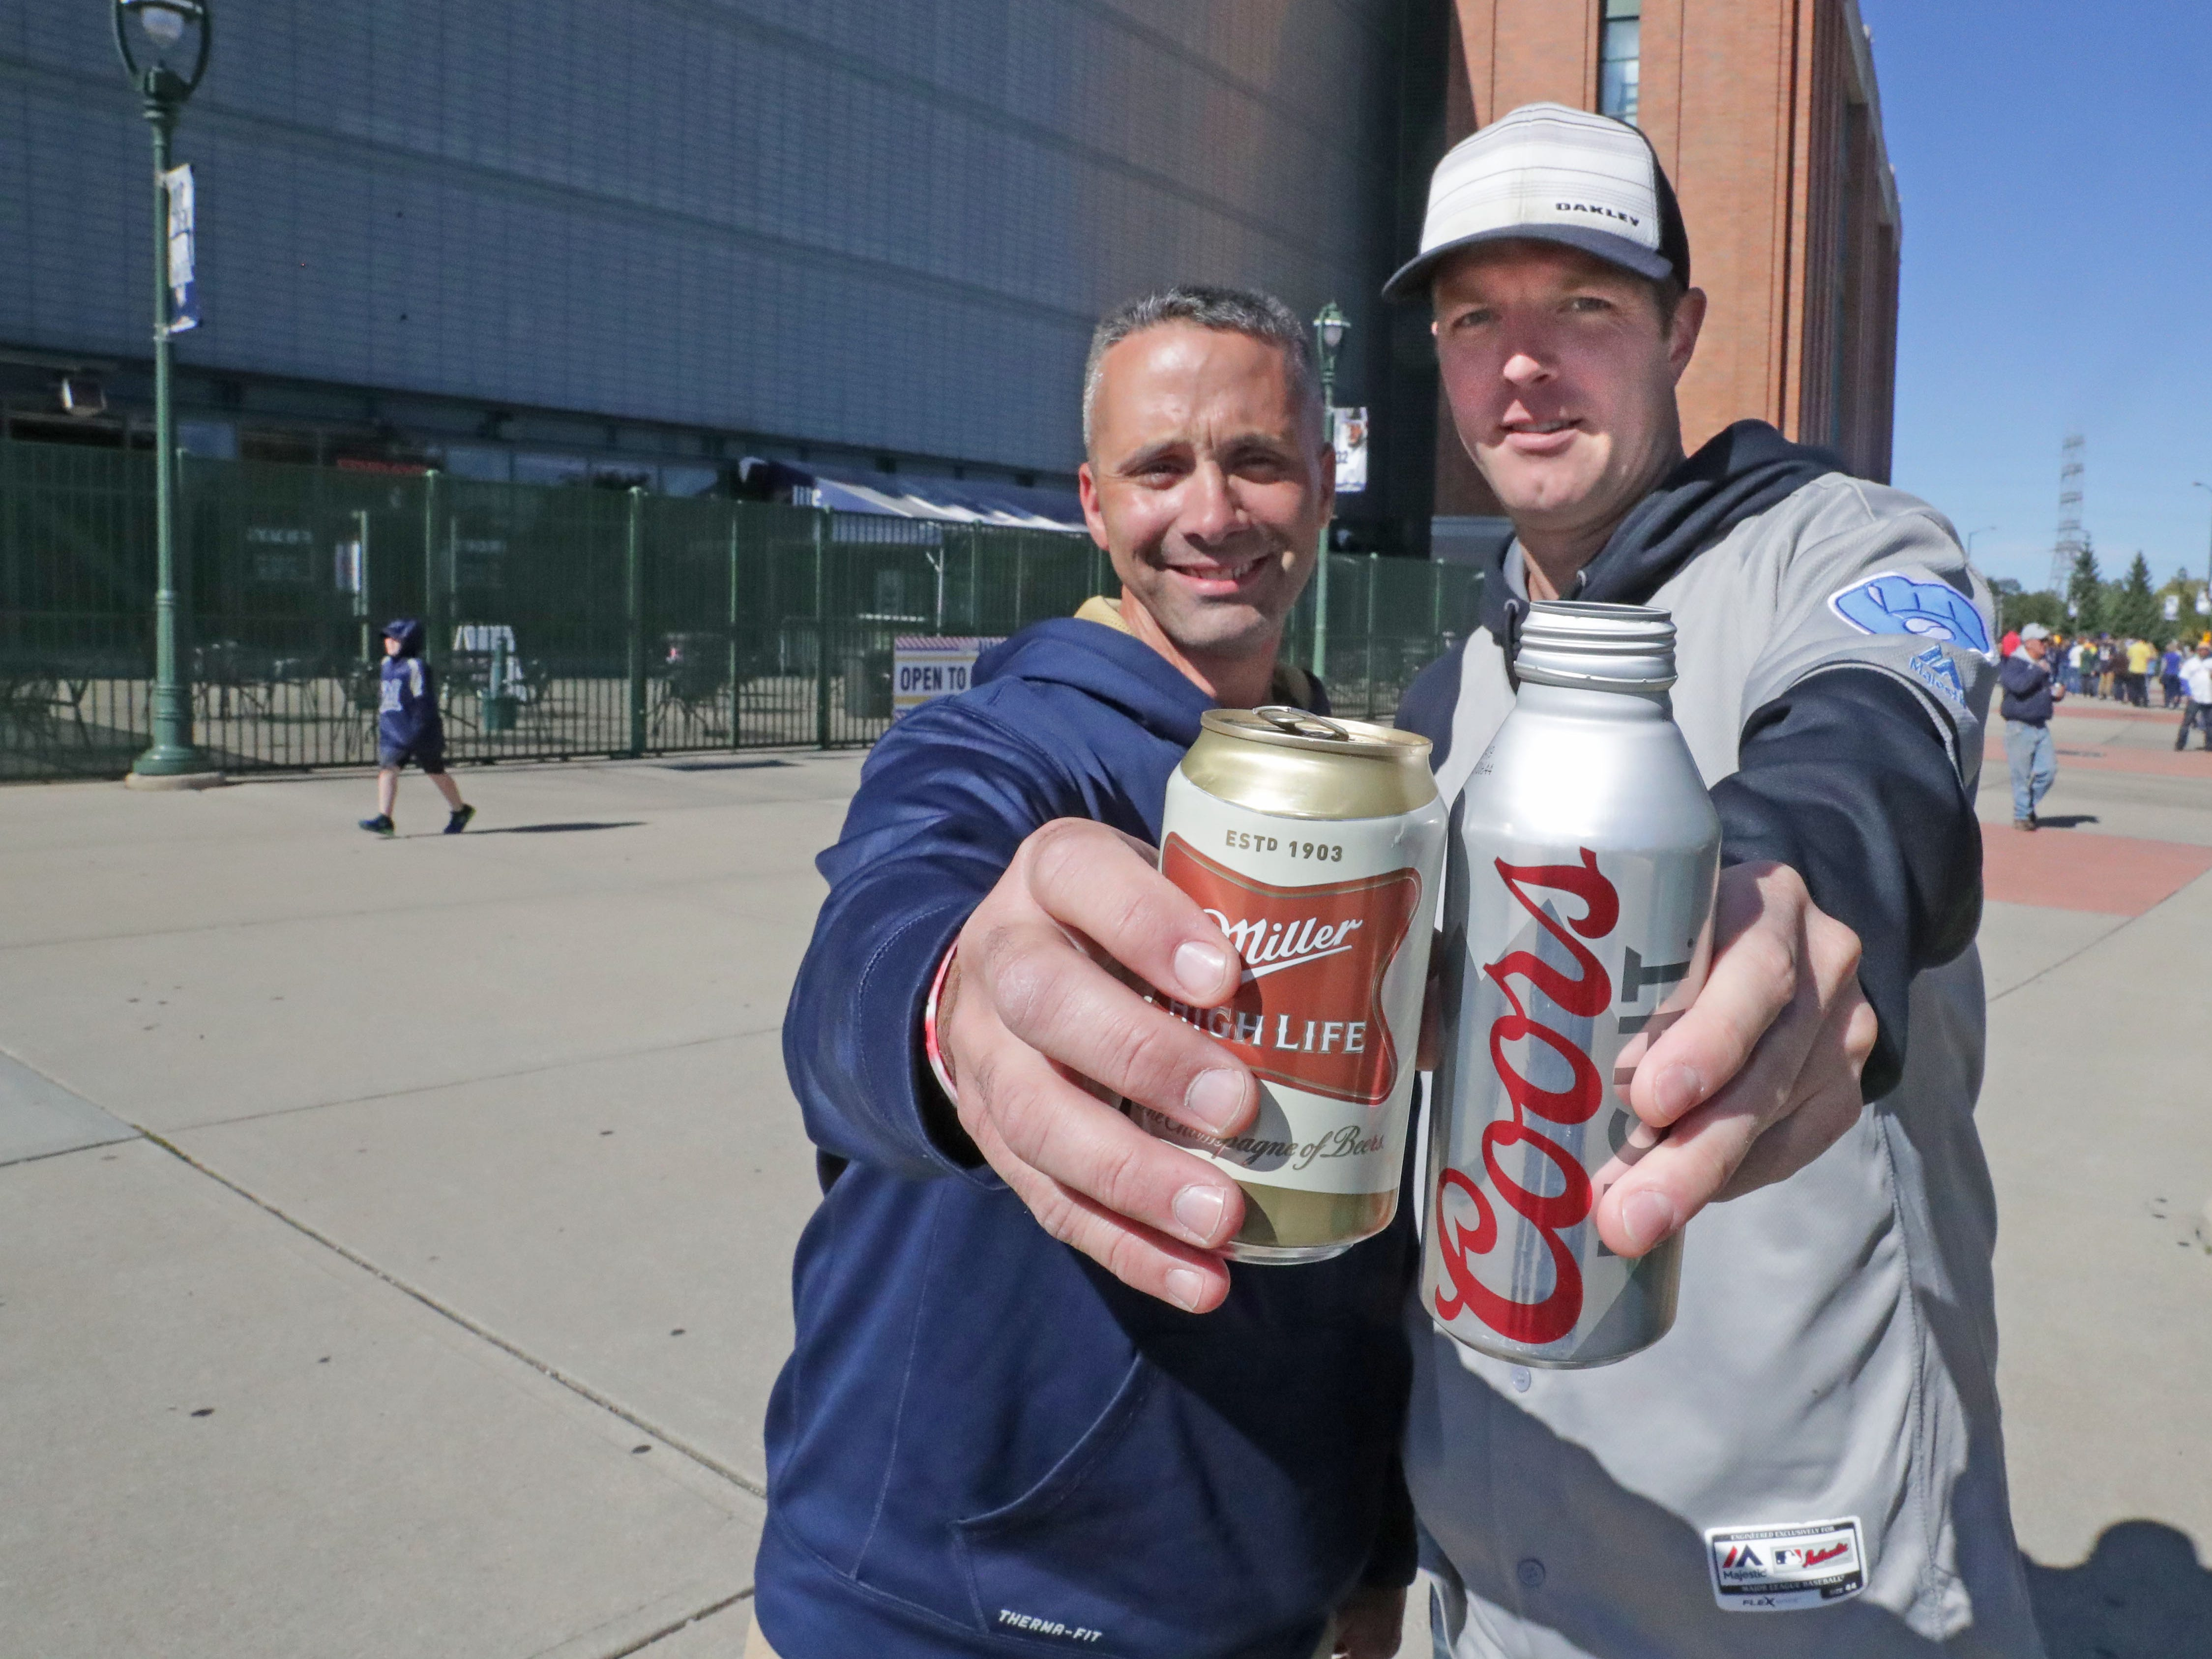 Joe Citro of Cudhay holds a can for Miller High Life as Matt Meeusen of Pewaukee  holds a Coors Light before the Milwaukee Brewers National League Divisional Series game against the Colorado Rockies.